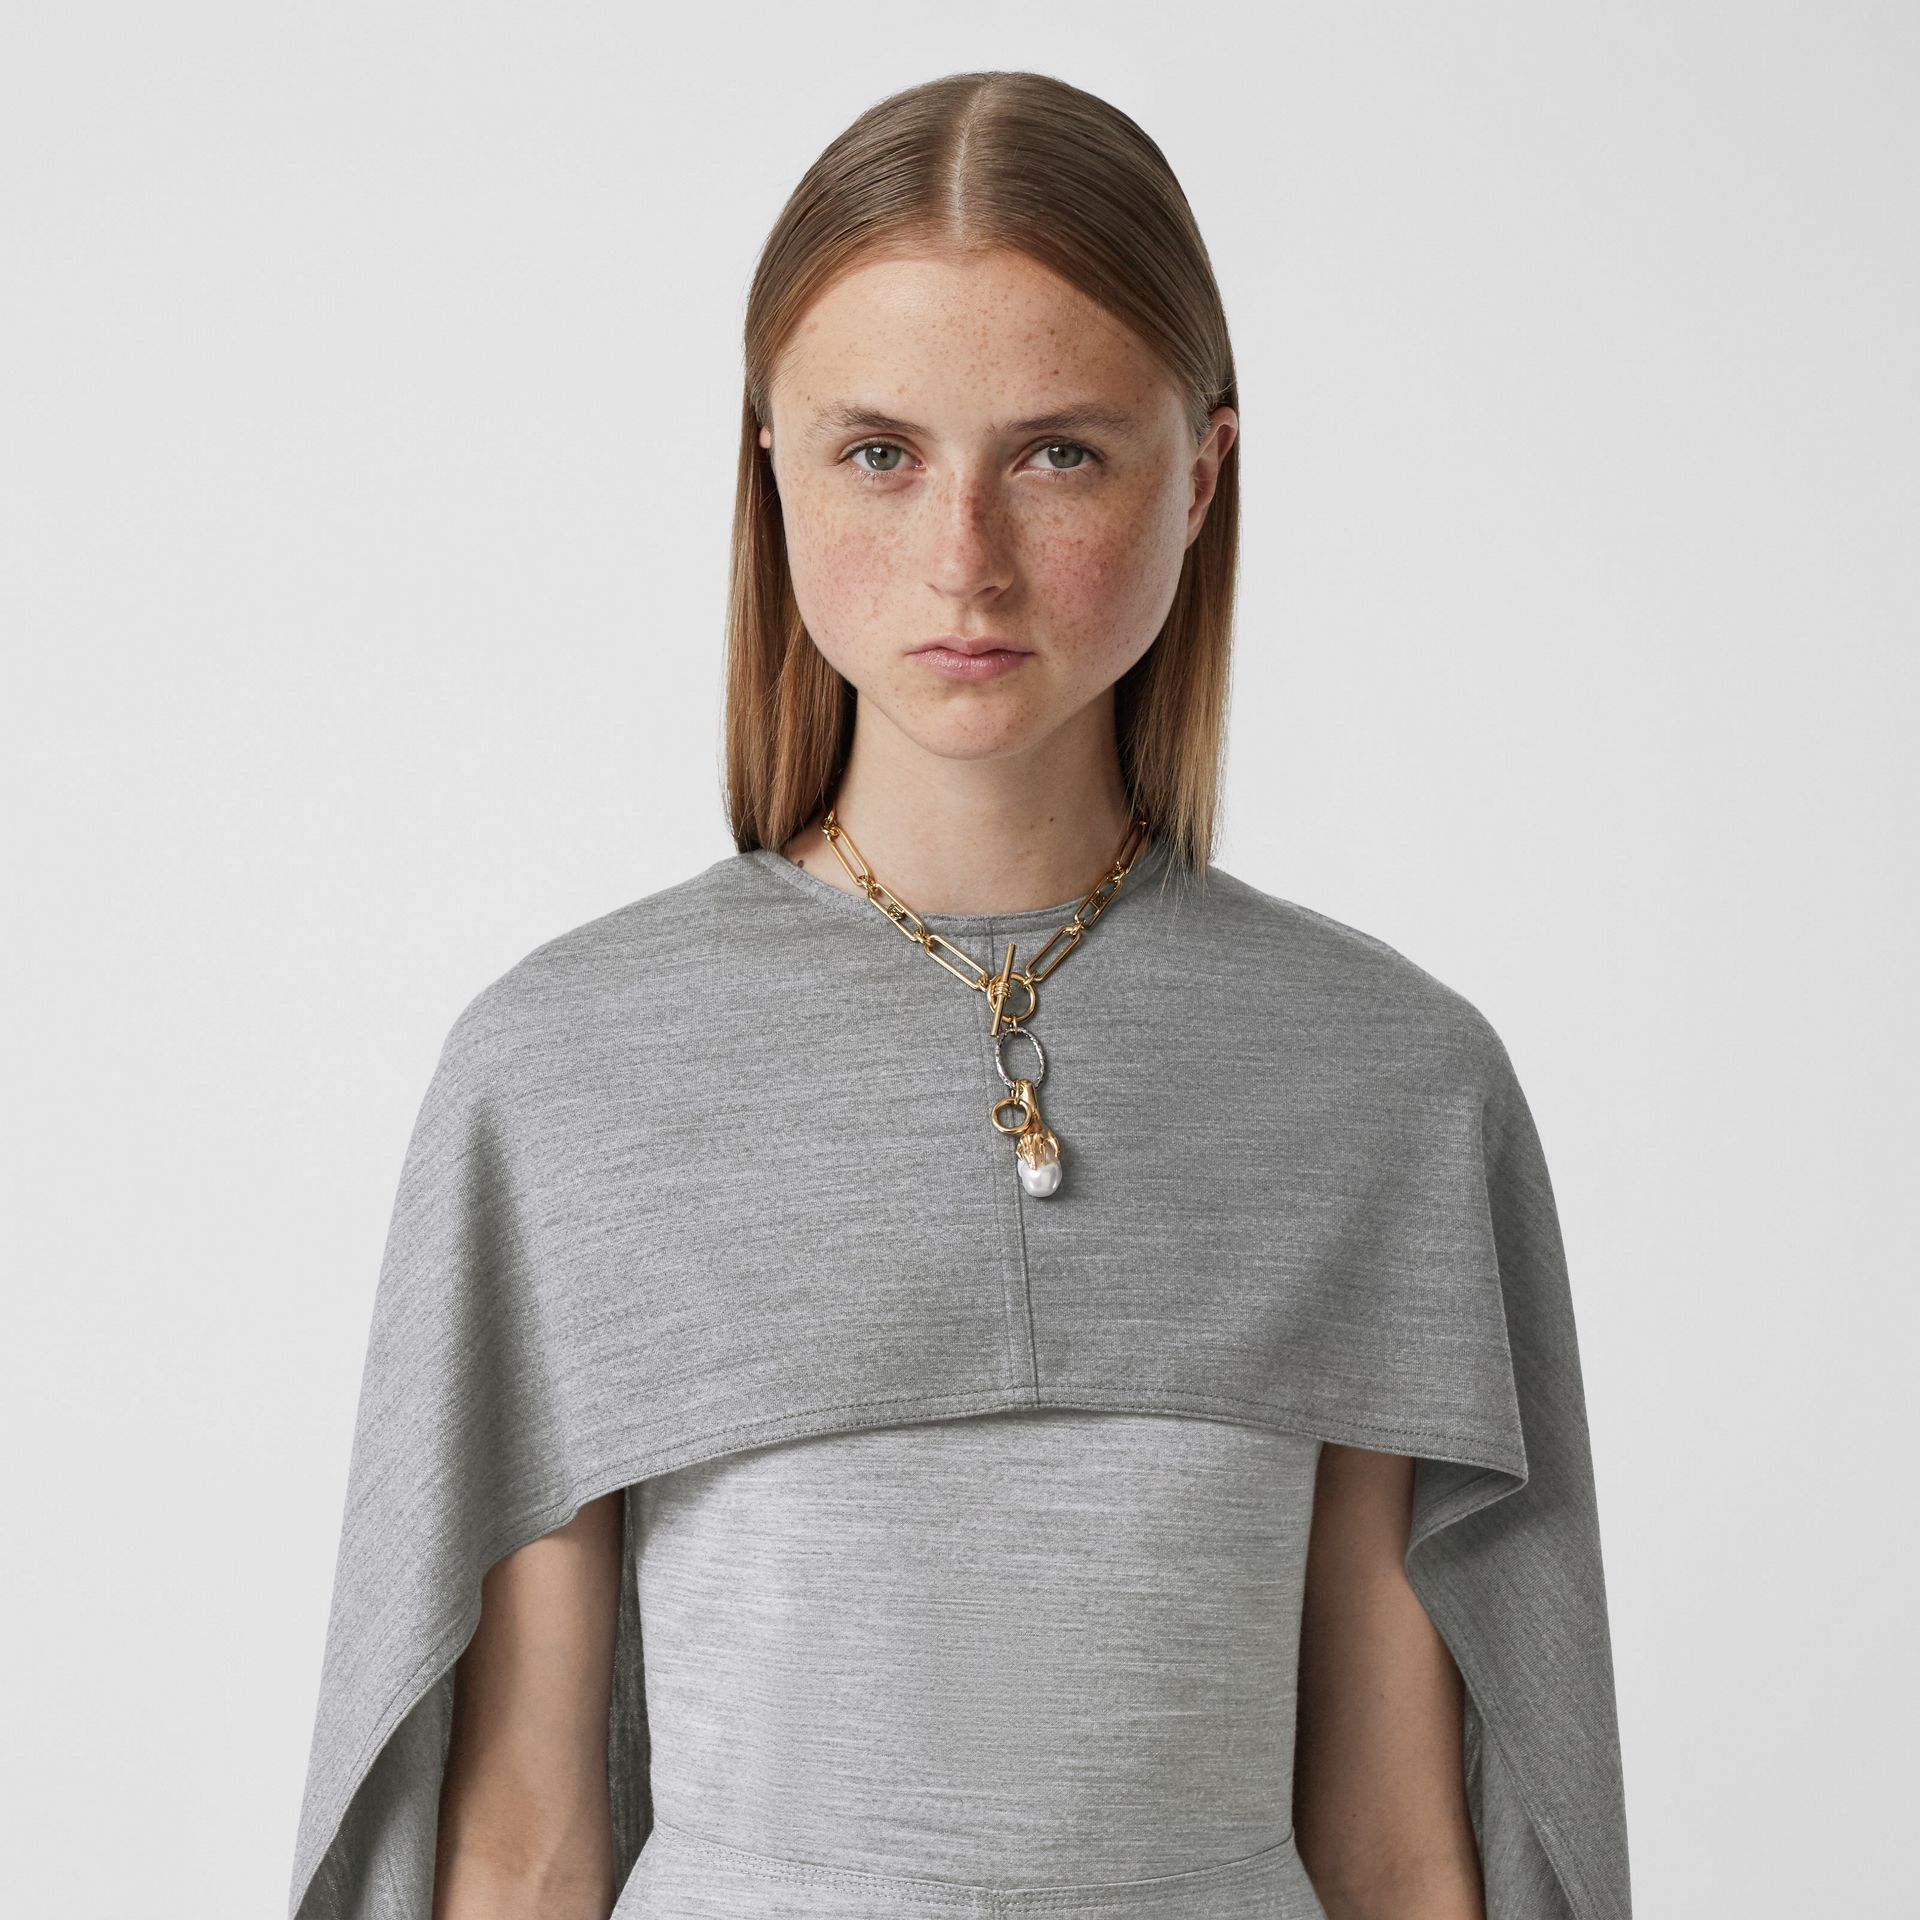 Cape Detail Technical Wool Jersey Shift Dress in Cloud Grey - Women | Burberry United States - gallery image 1